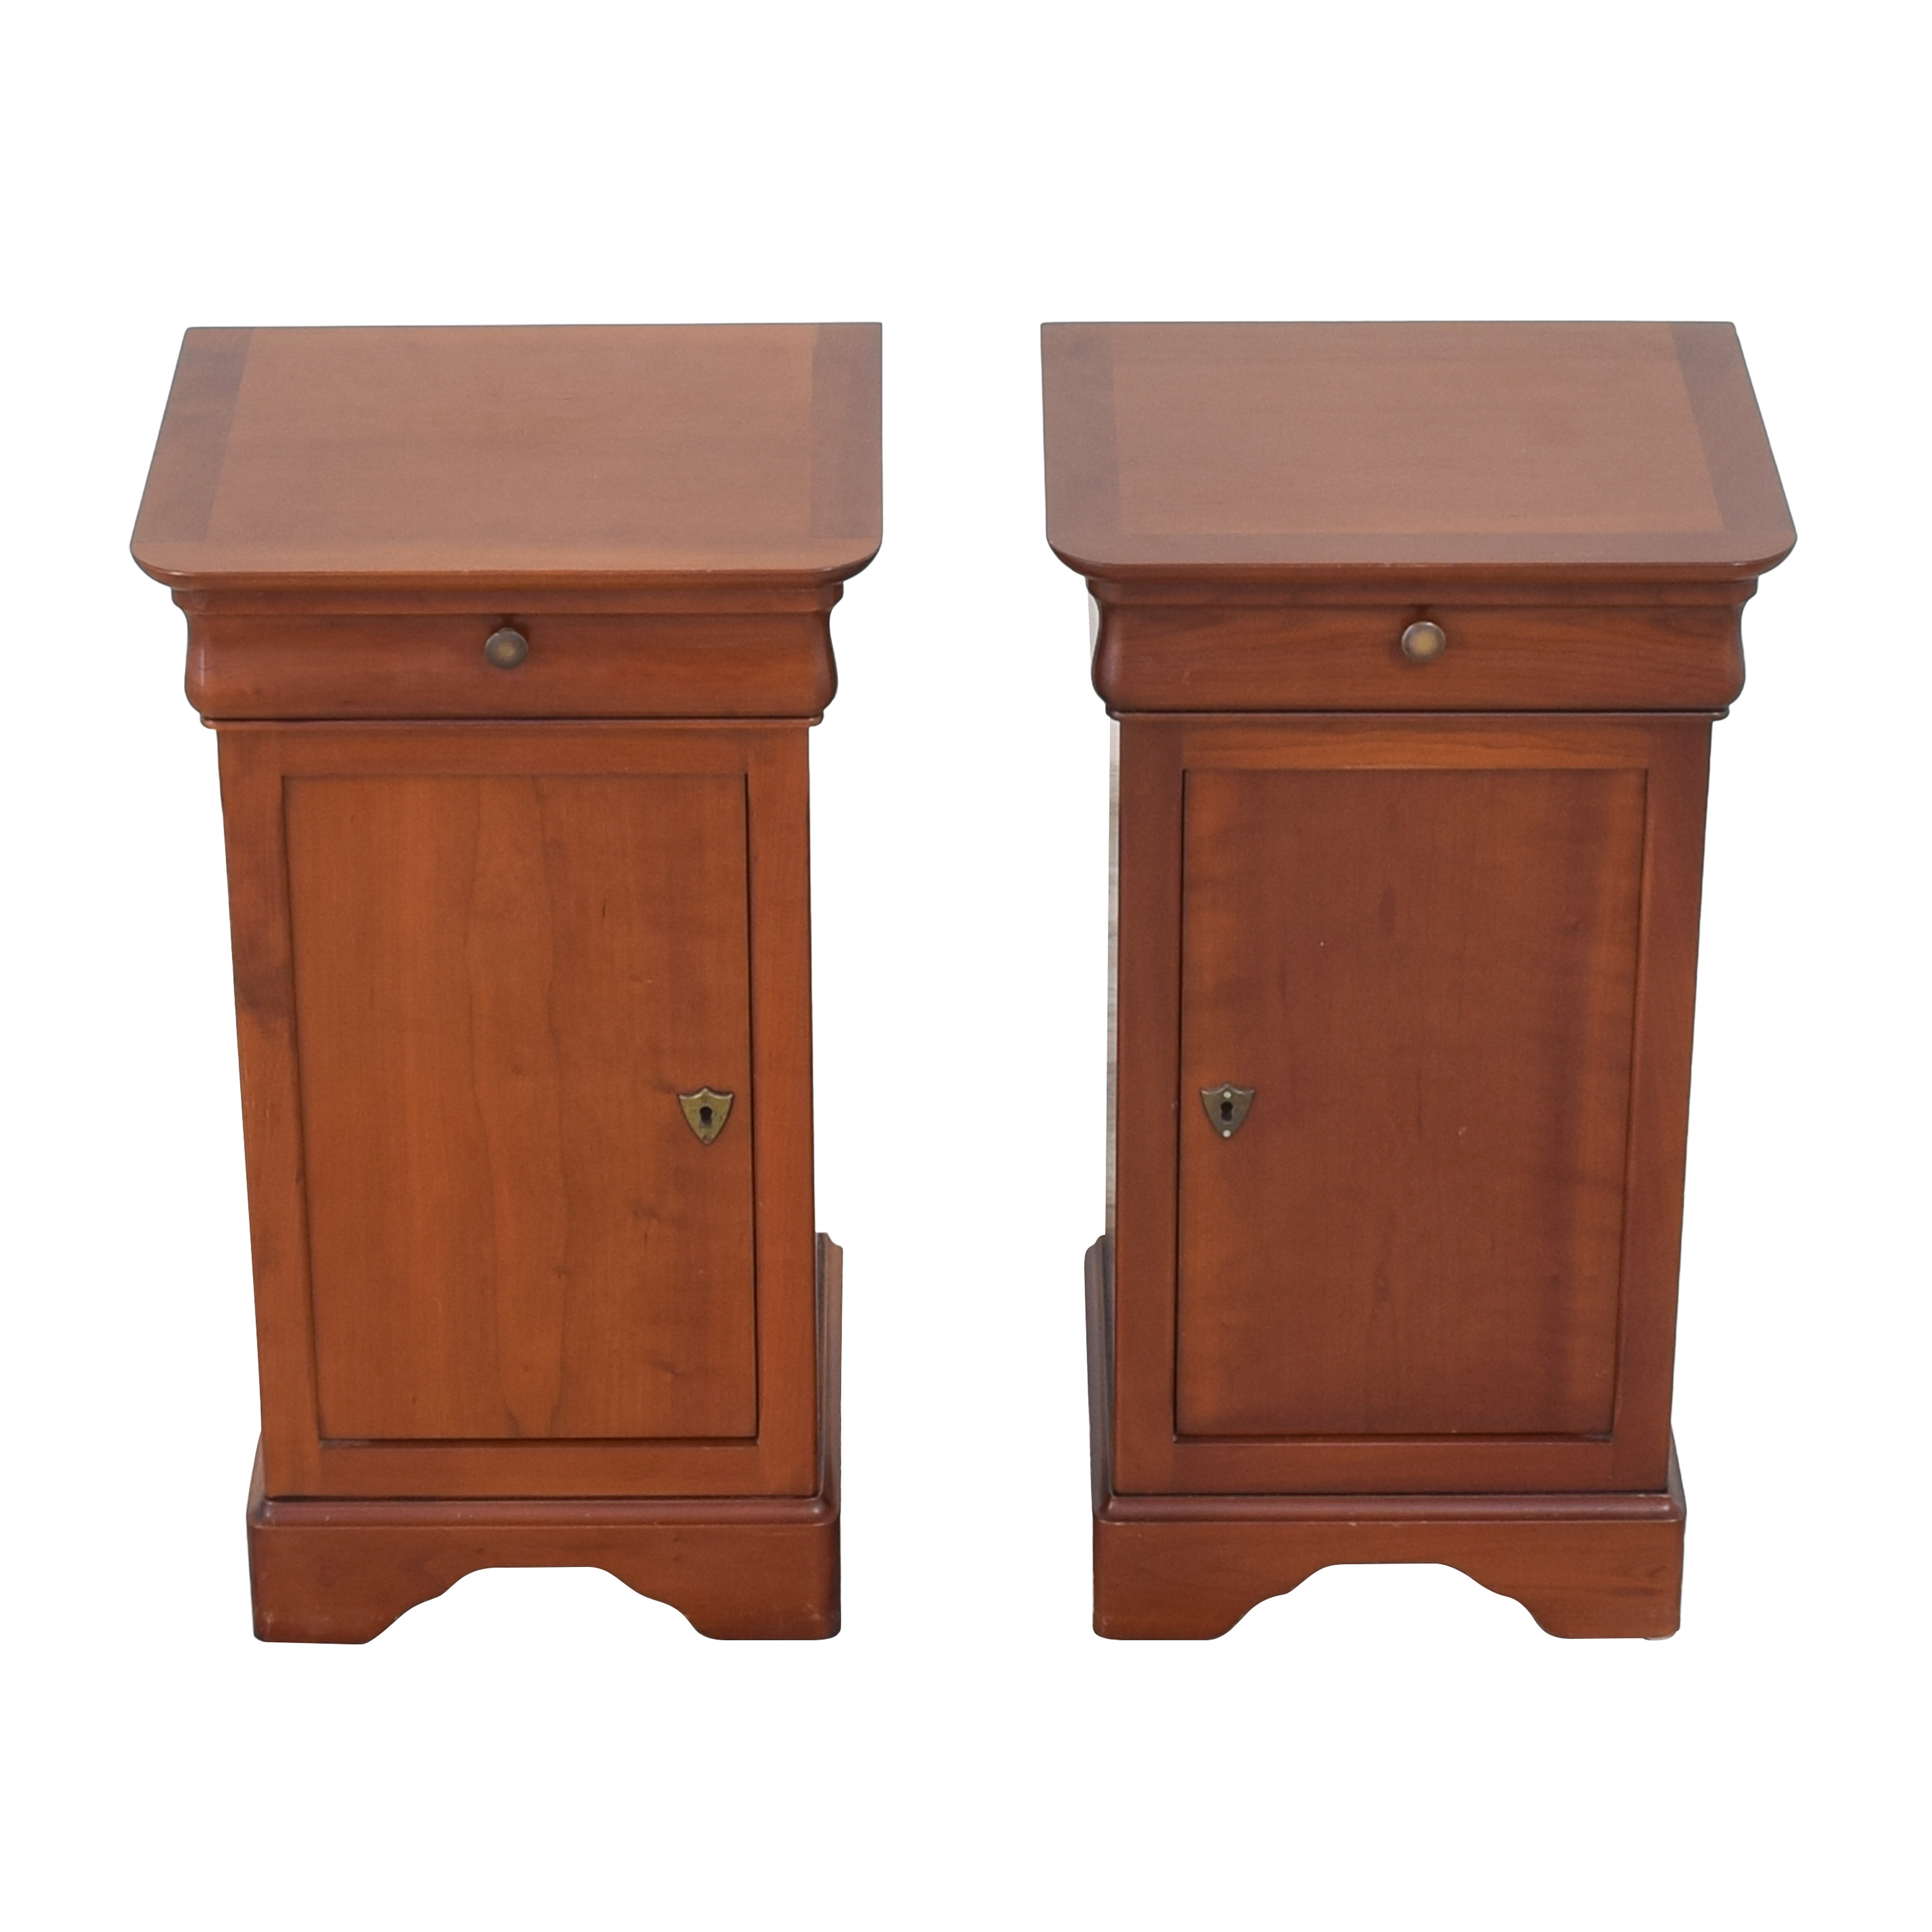 Grange Grange Louis Philippe Style Cherry Night Stands dimensions